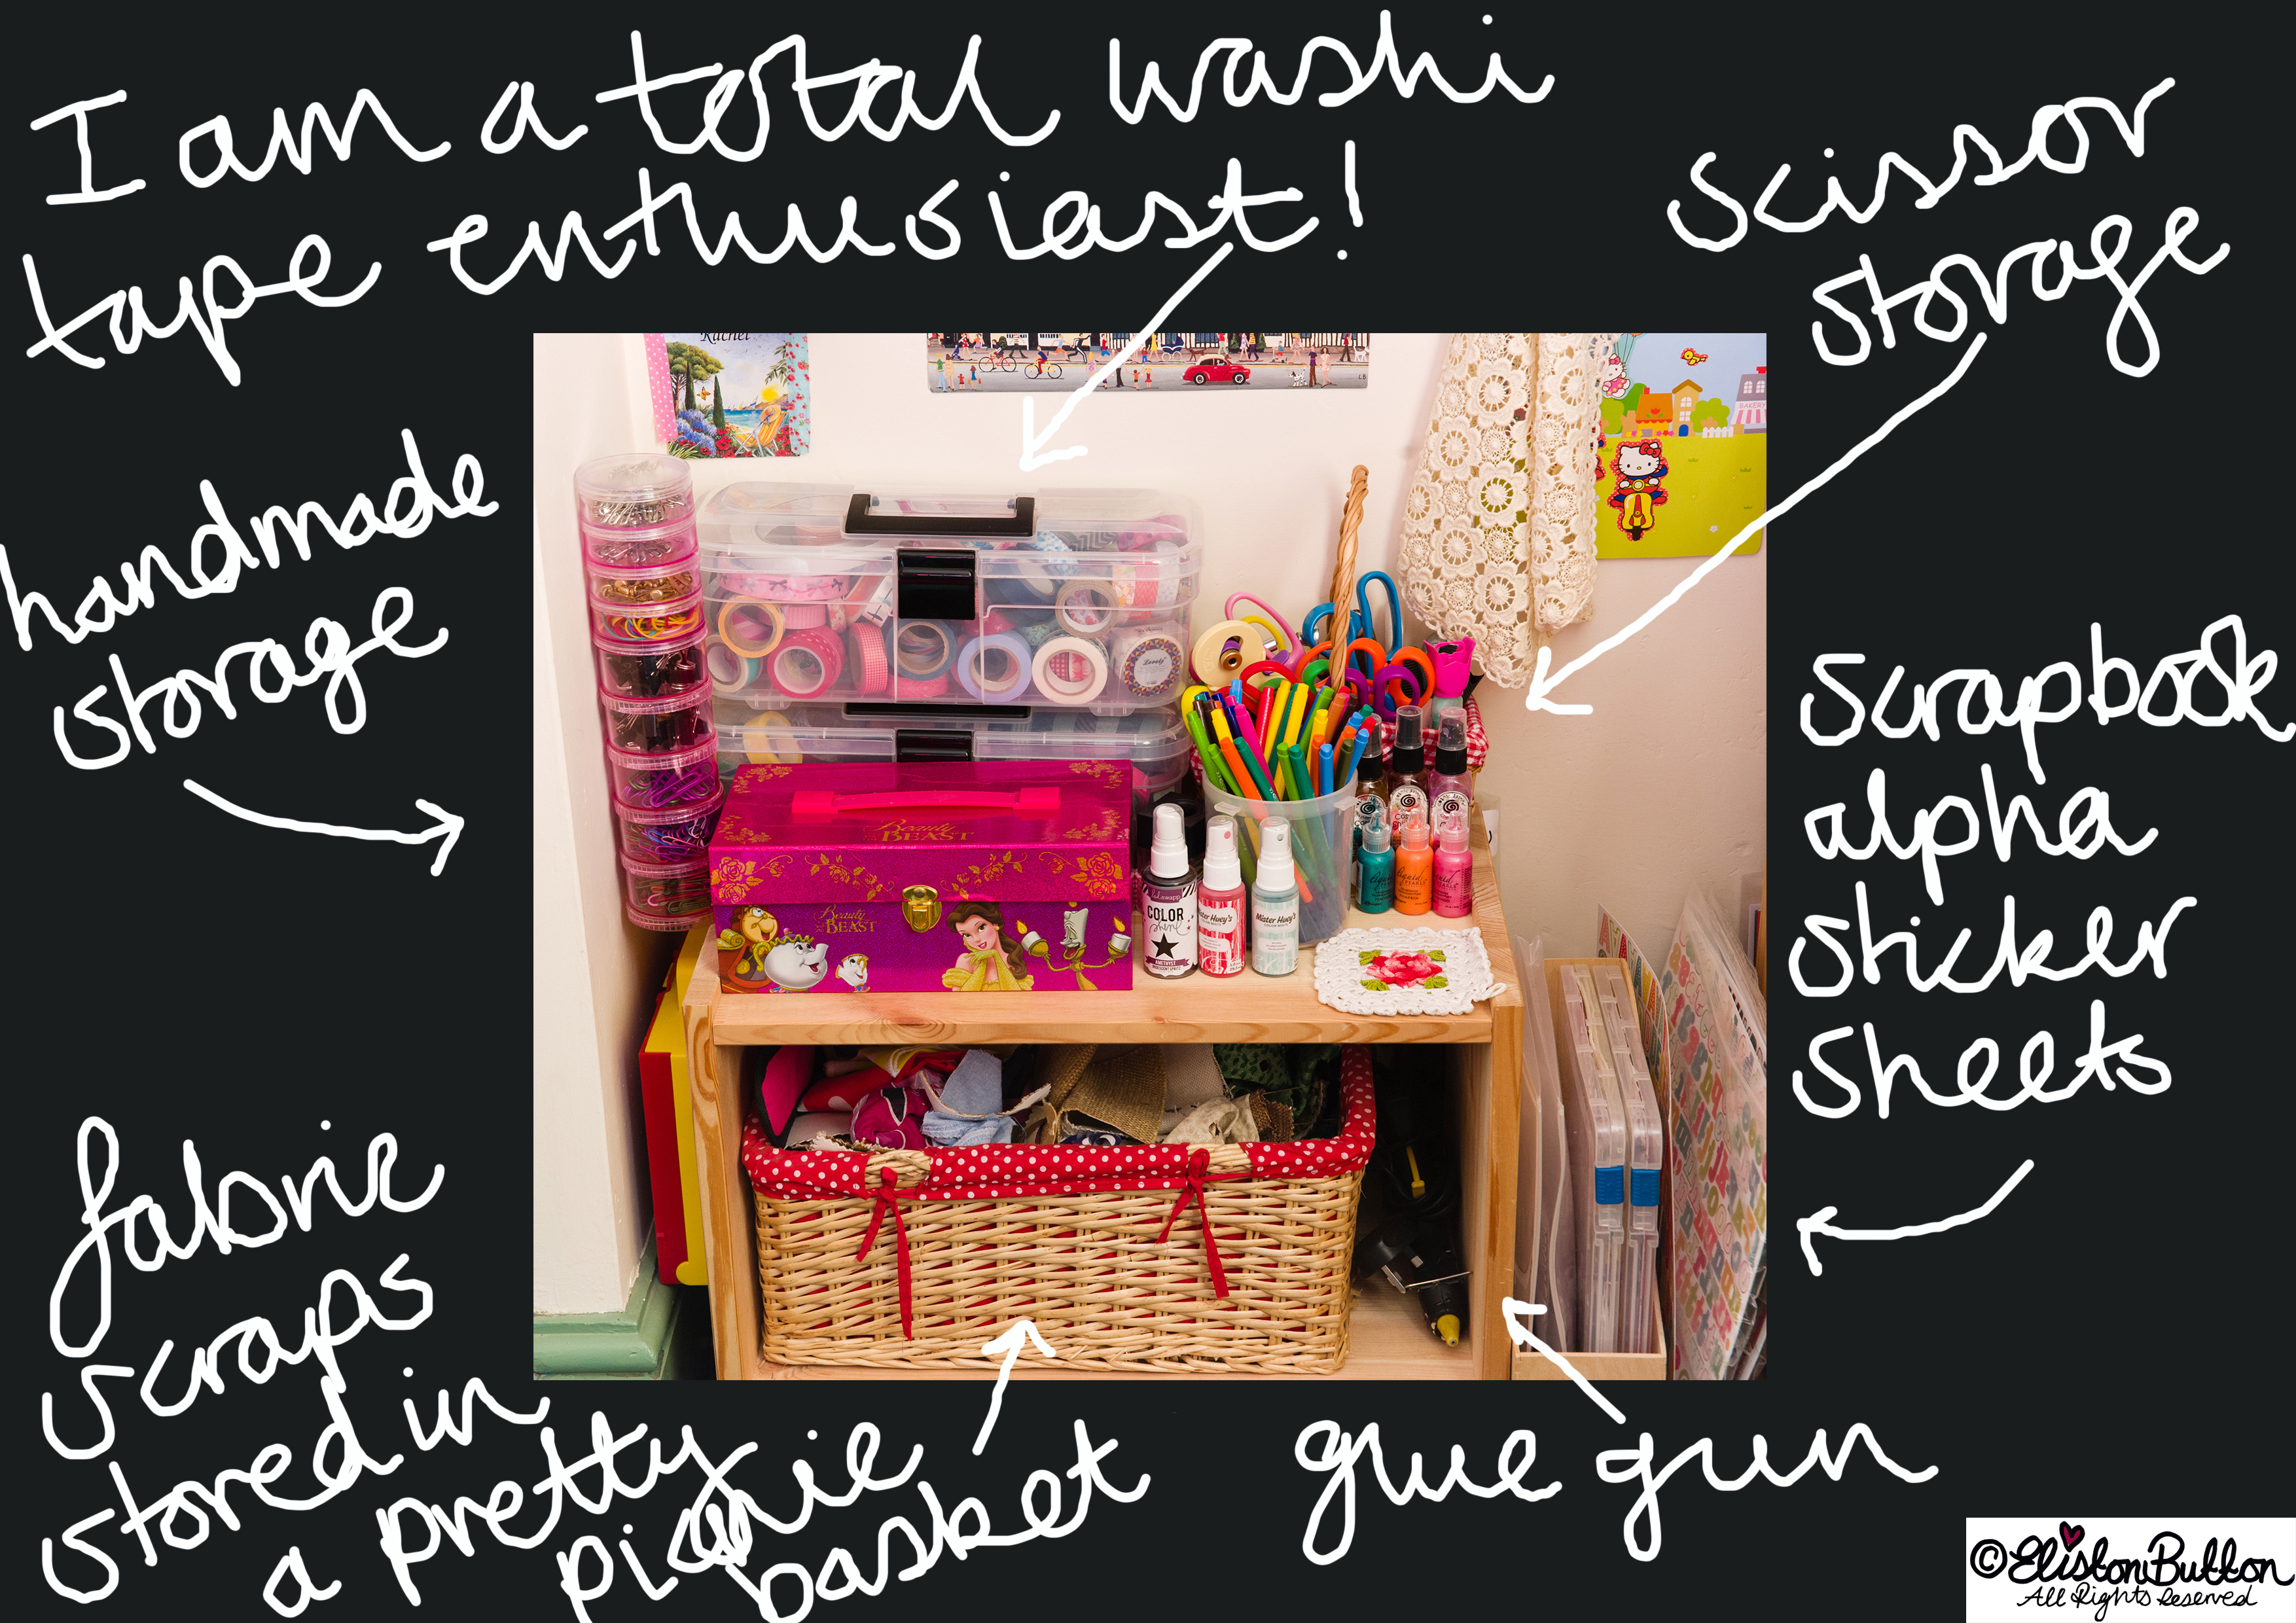 Eliston Button Headquarters 2013 -  Washi Tape and Craft Supply Storage - Where The Magic Happens... at www.elistonbutton.com - Eliston Button - That Crafty Kid – Art, Design, Craft & Adventure.